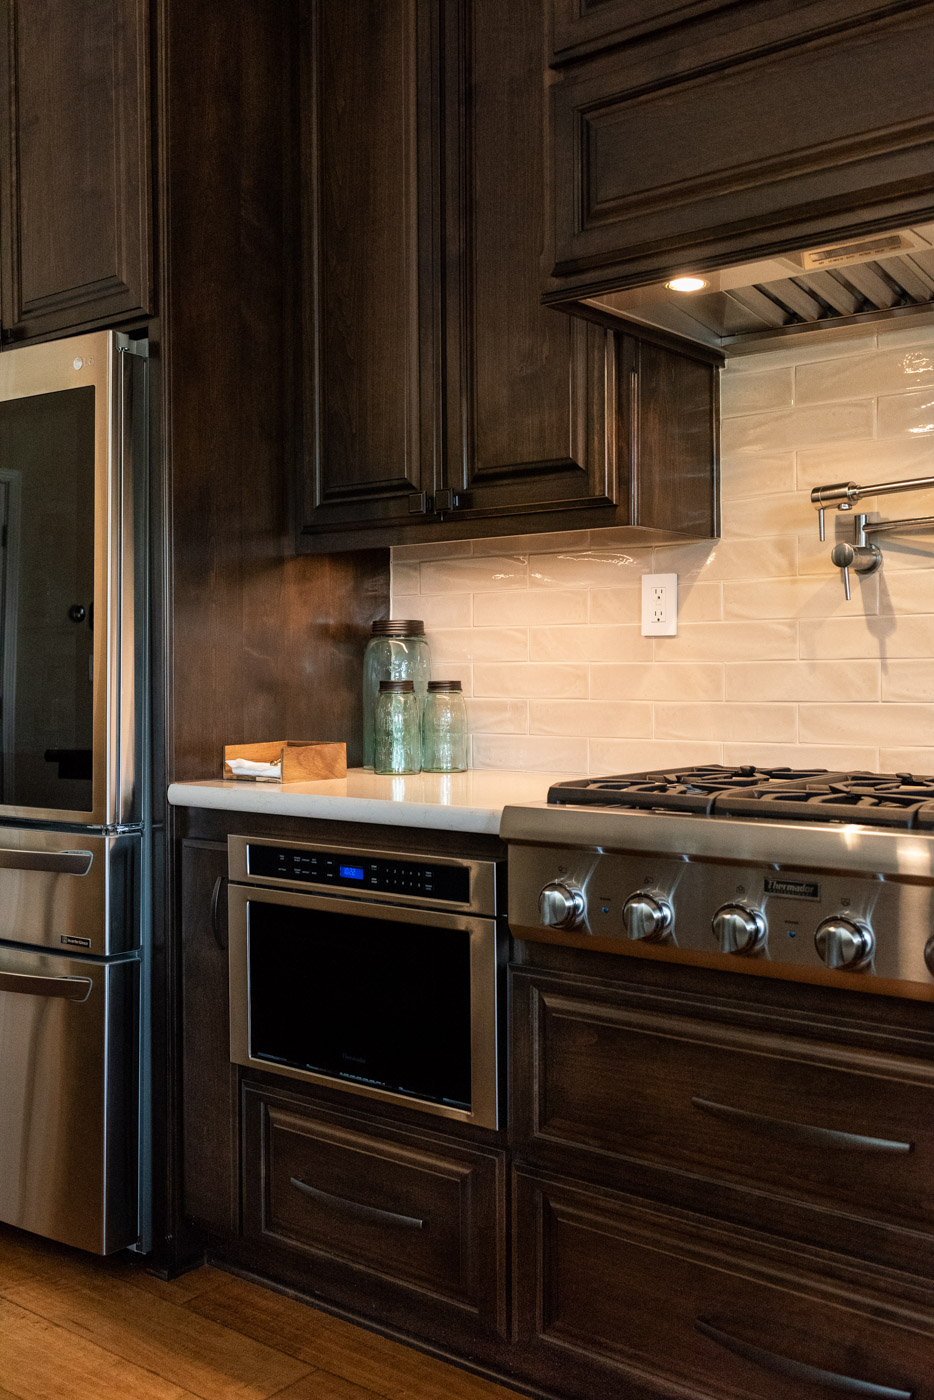 Traditional Mediterranean kitchen with dark wood stain cabinets and custom microwave storage